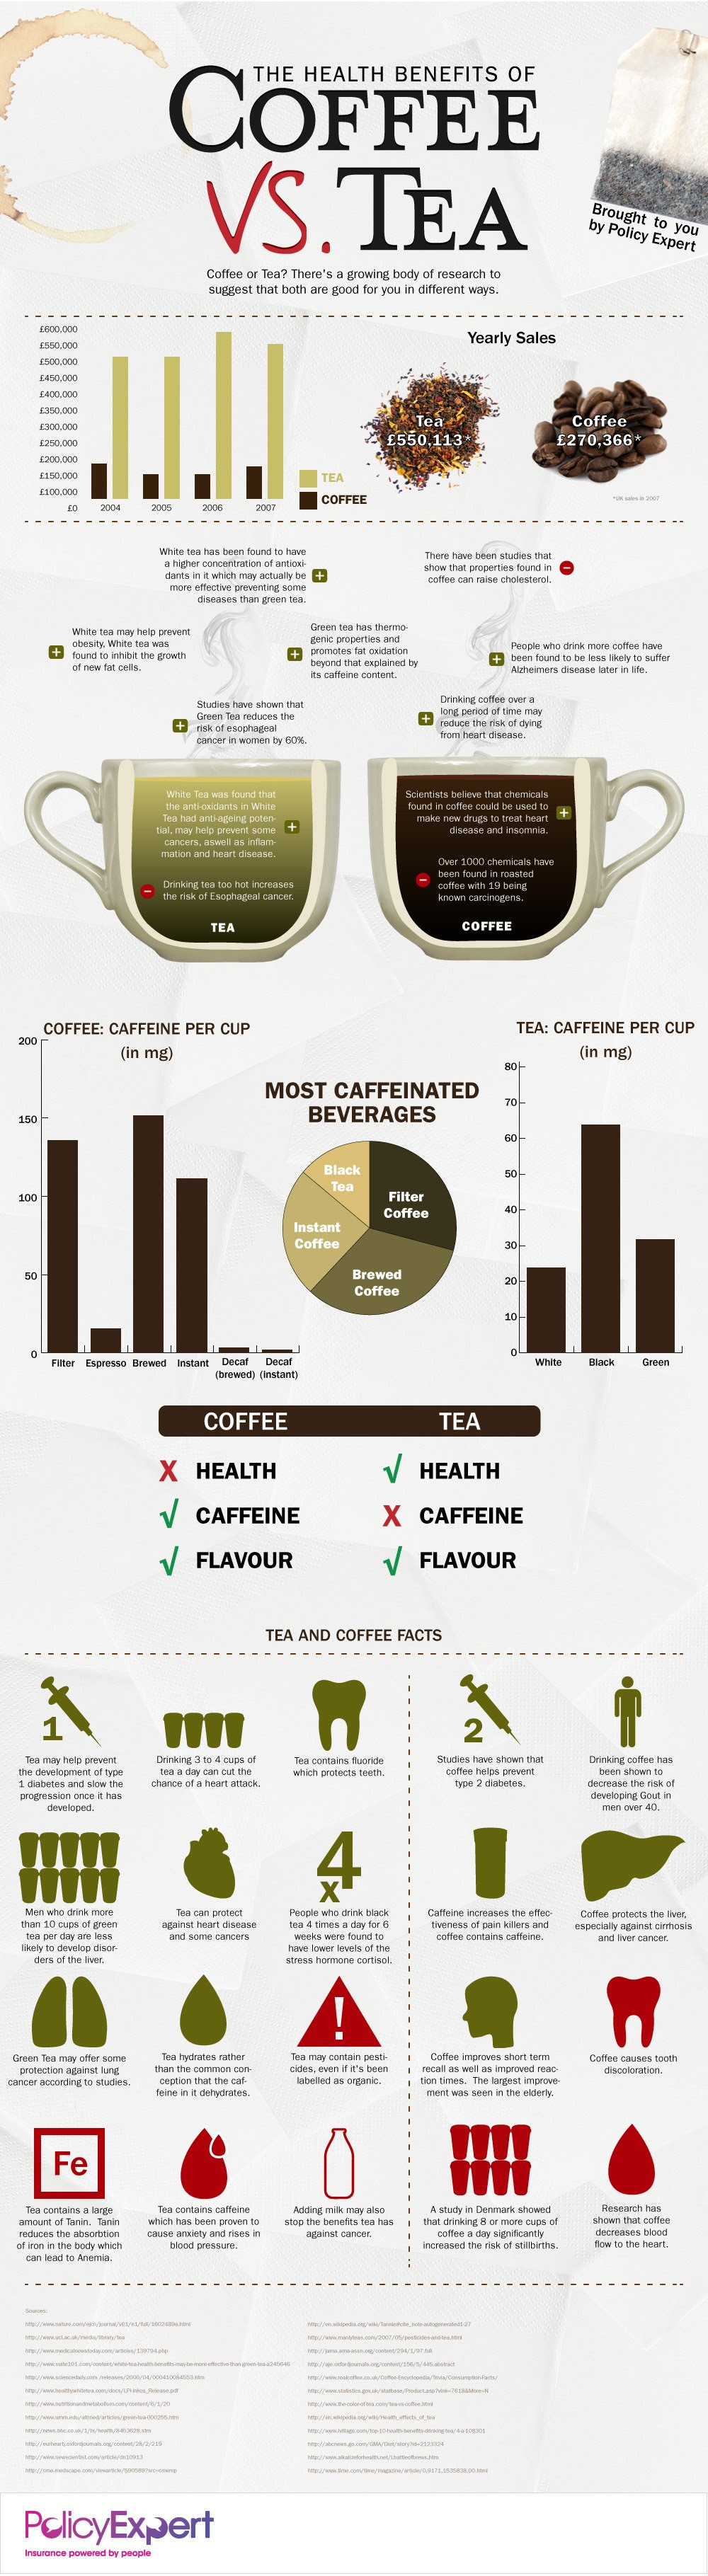 coffee.v.tea-1.jpg